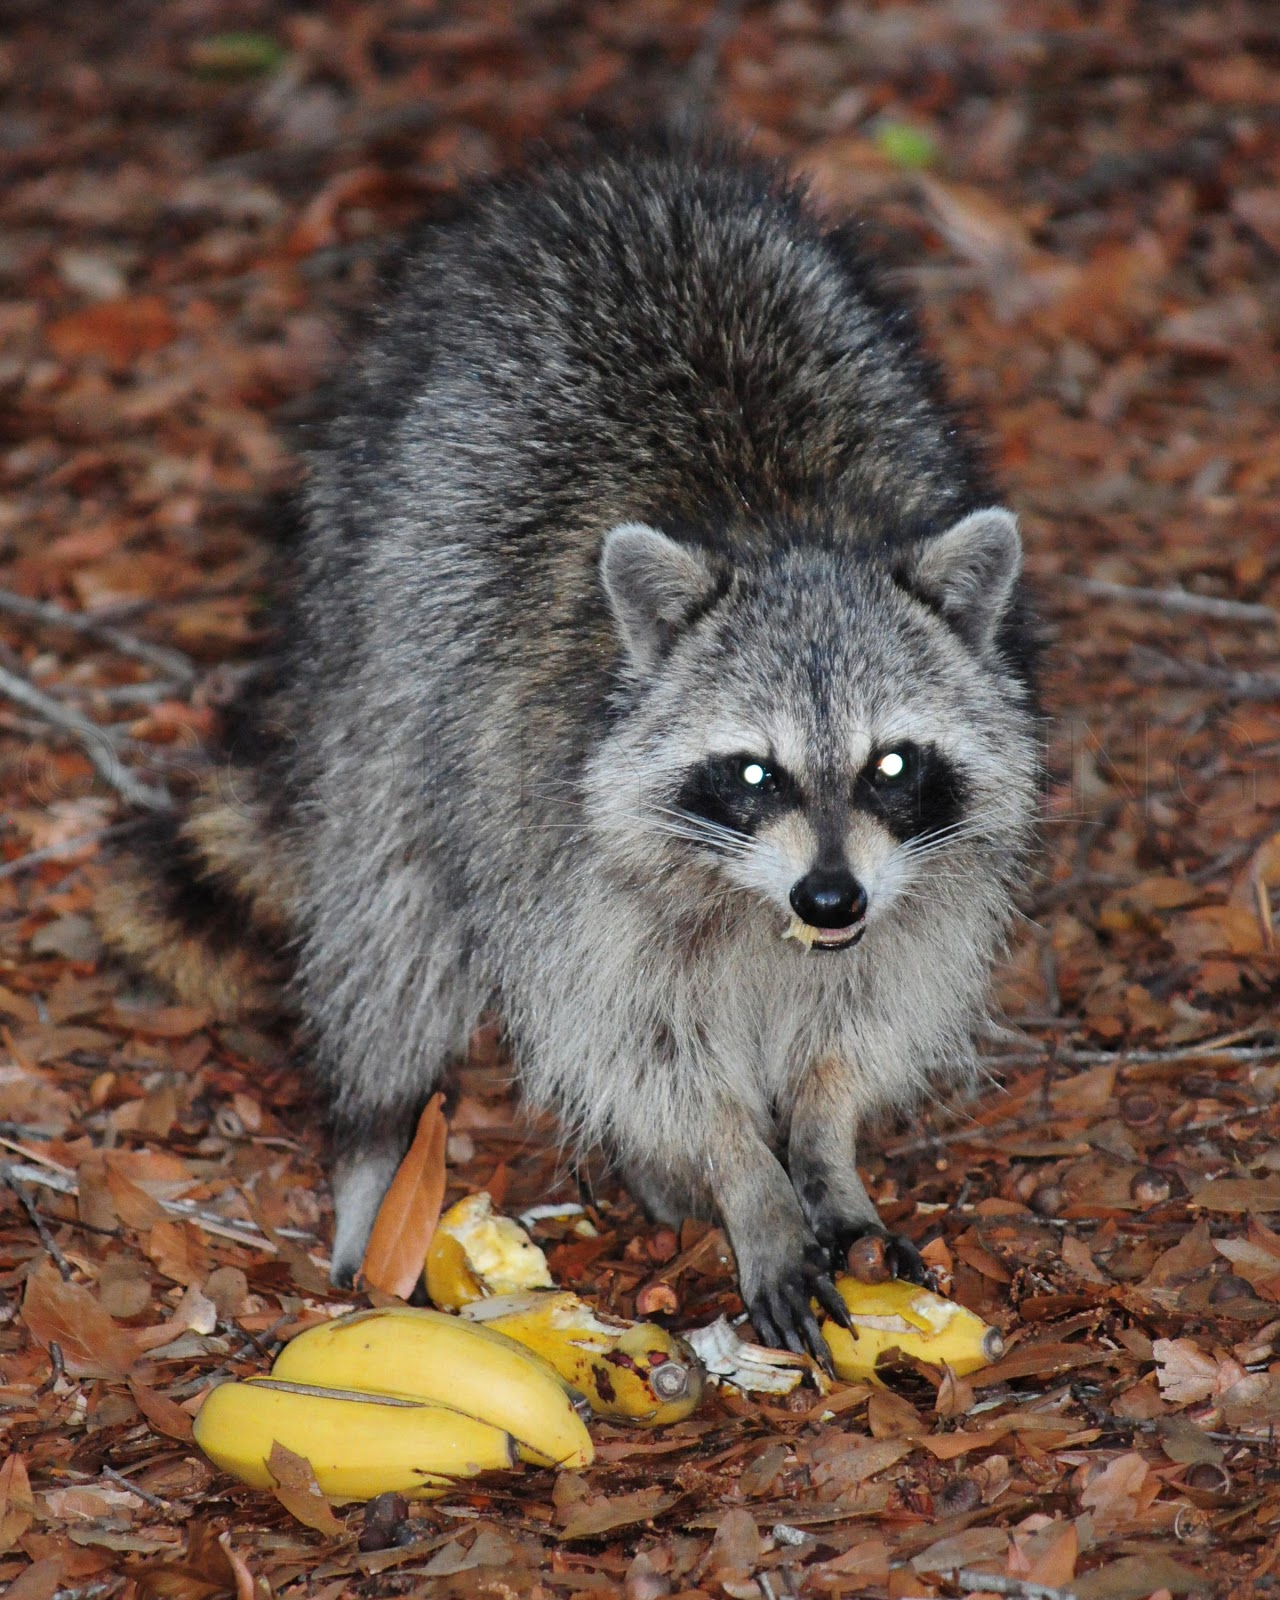 One Of My Newest Tenants. This Raccoon Appeared Saturday In My Back Yard In  Orlando. I Fed It Some Bananas. It Seemed Happy With Its Meal.